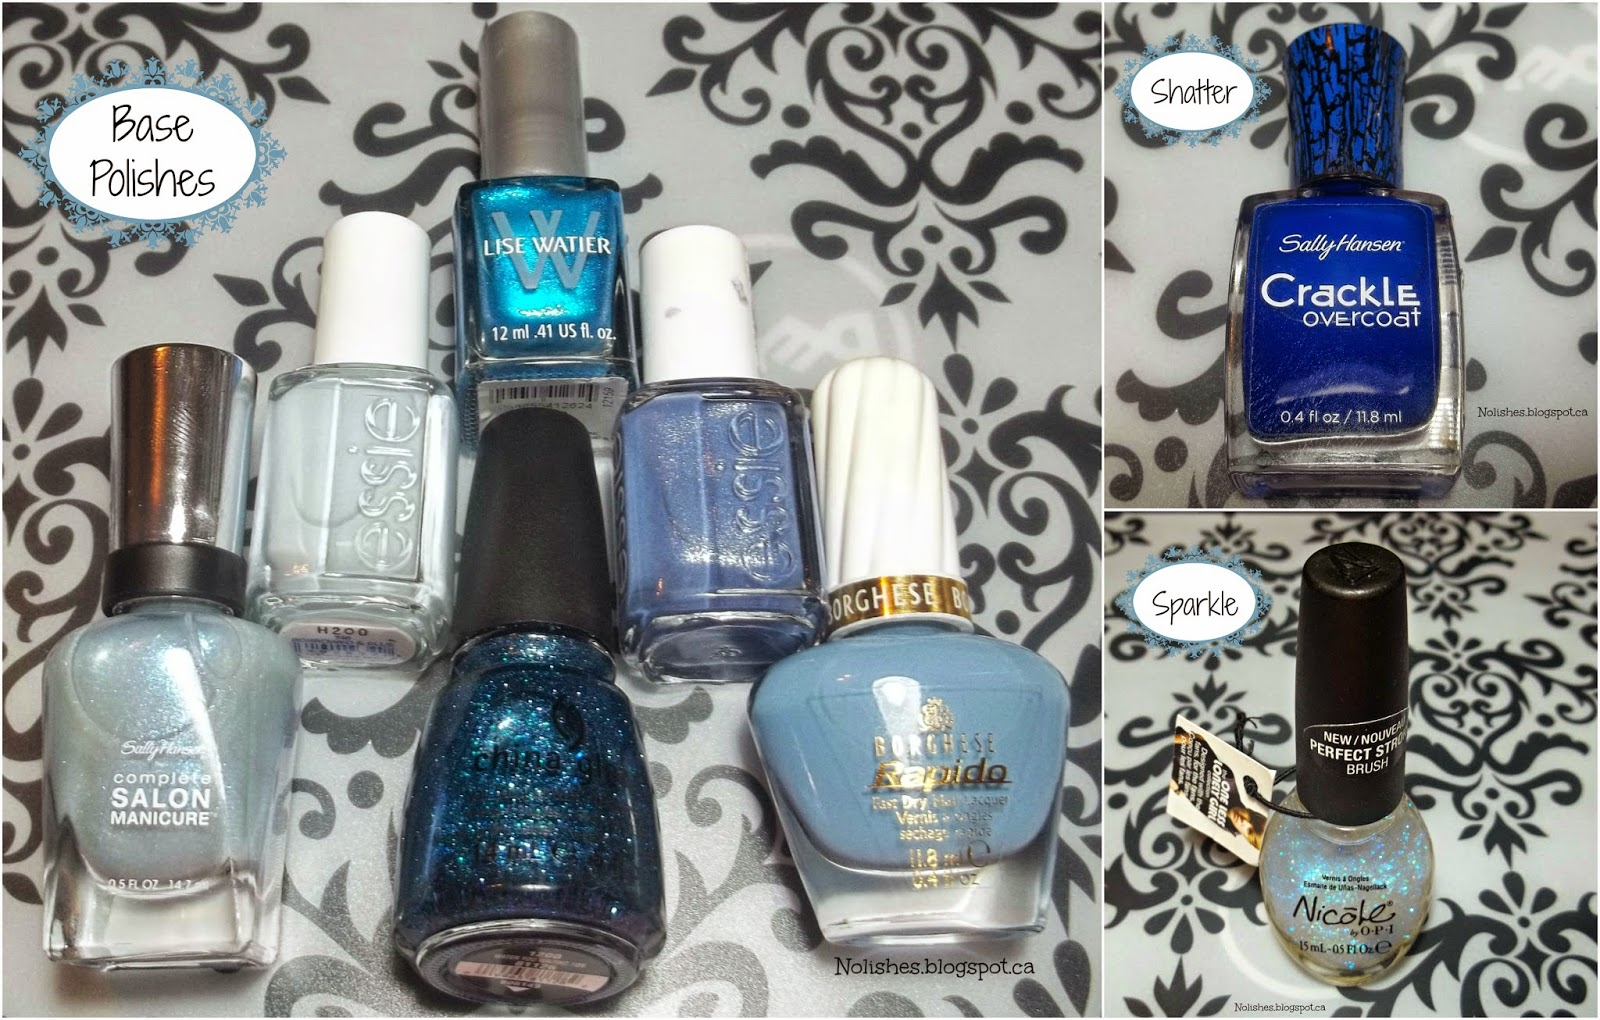 Sally Hansen Crackle Overcoat 'Distressed Denim', Sally Hansen Complete Salon Manicure 'Tulle Kit', Essie 'Borrowed & Blue', Essie 'Smooth Sailing', Lise Watier 'Blue-tiful', Borghese Rapido 'Capriccio Blue', China Glaze 'Water You Waiting For', and Nicole by OPI 'Top of My World'